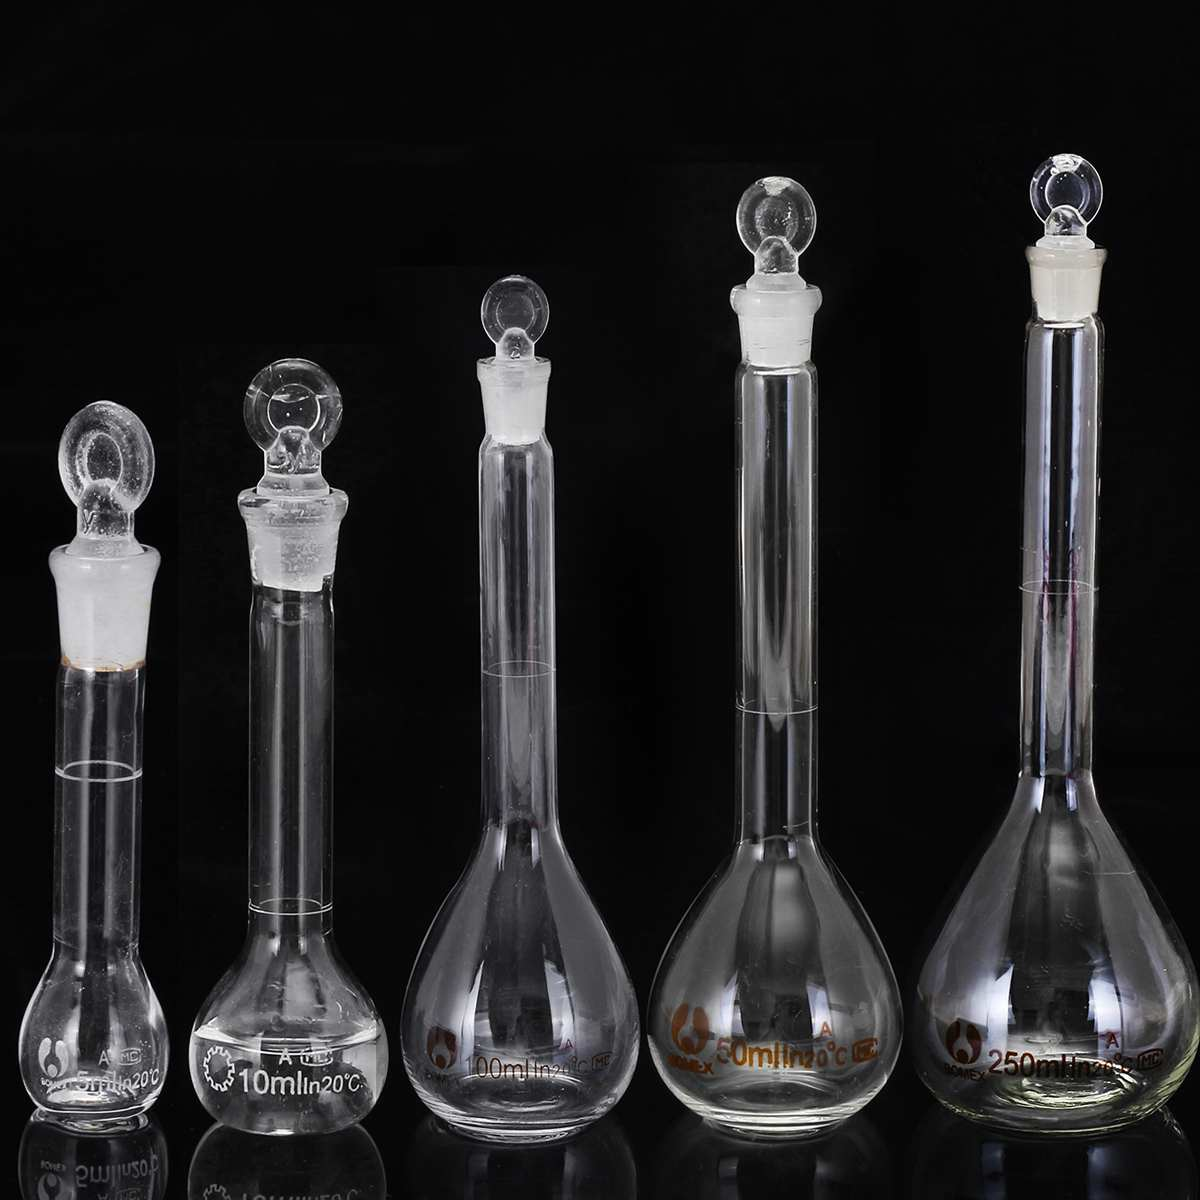 5-100ml Transparent Lab Conical Flask Glass Scientific Glass Erlenmeyer Flask Safe Glassware Laboratory School Research Supply(China)